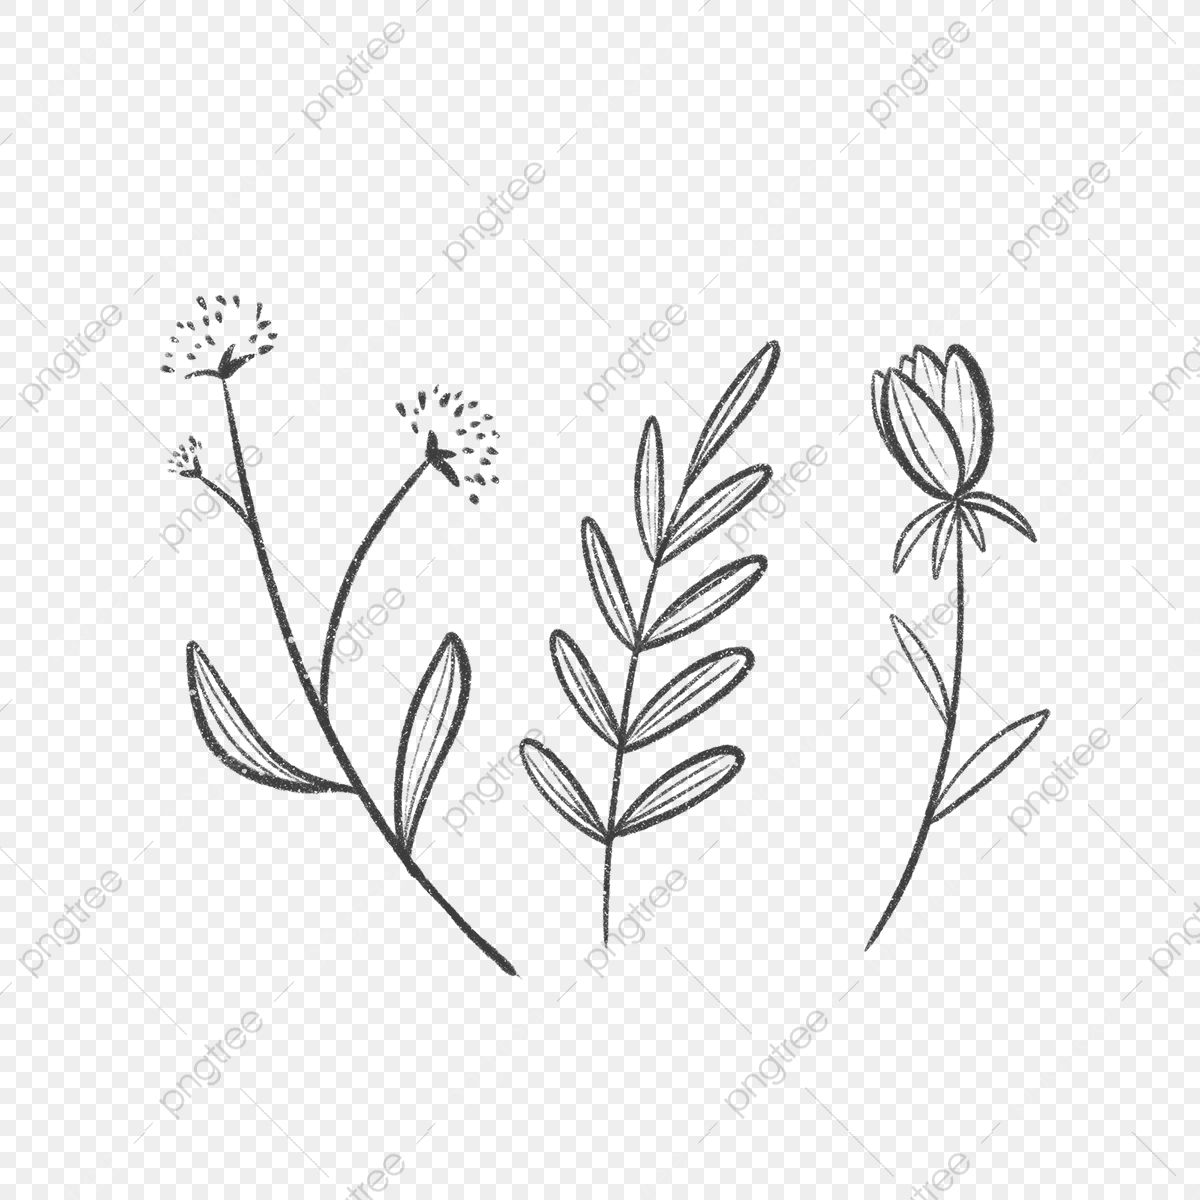 Download Hd Branch With Long Leaves Rubber Stamp Leaf Branch Drawing Png Clipart And Use The Free Clipart For Leaf Drawing Branch Drawing Fall Leaves Drawing